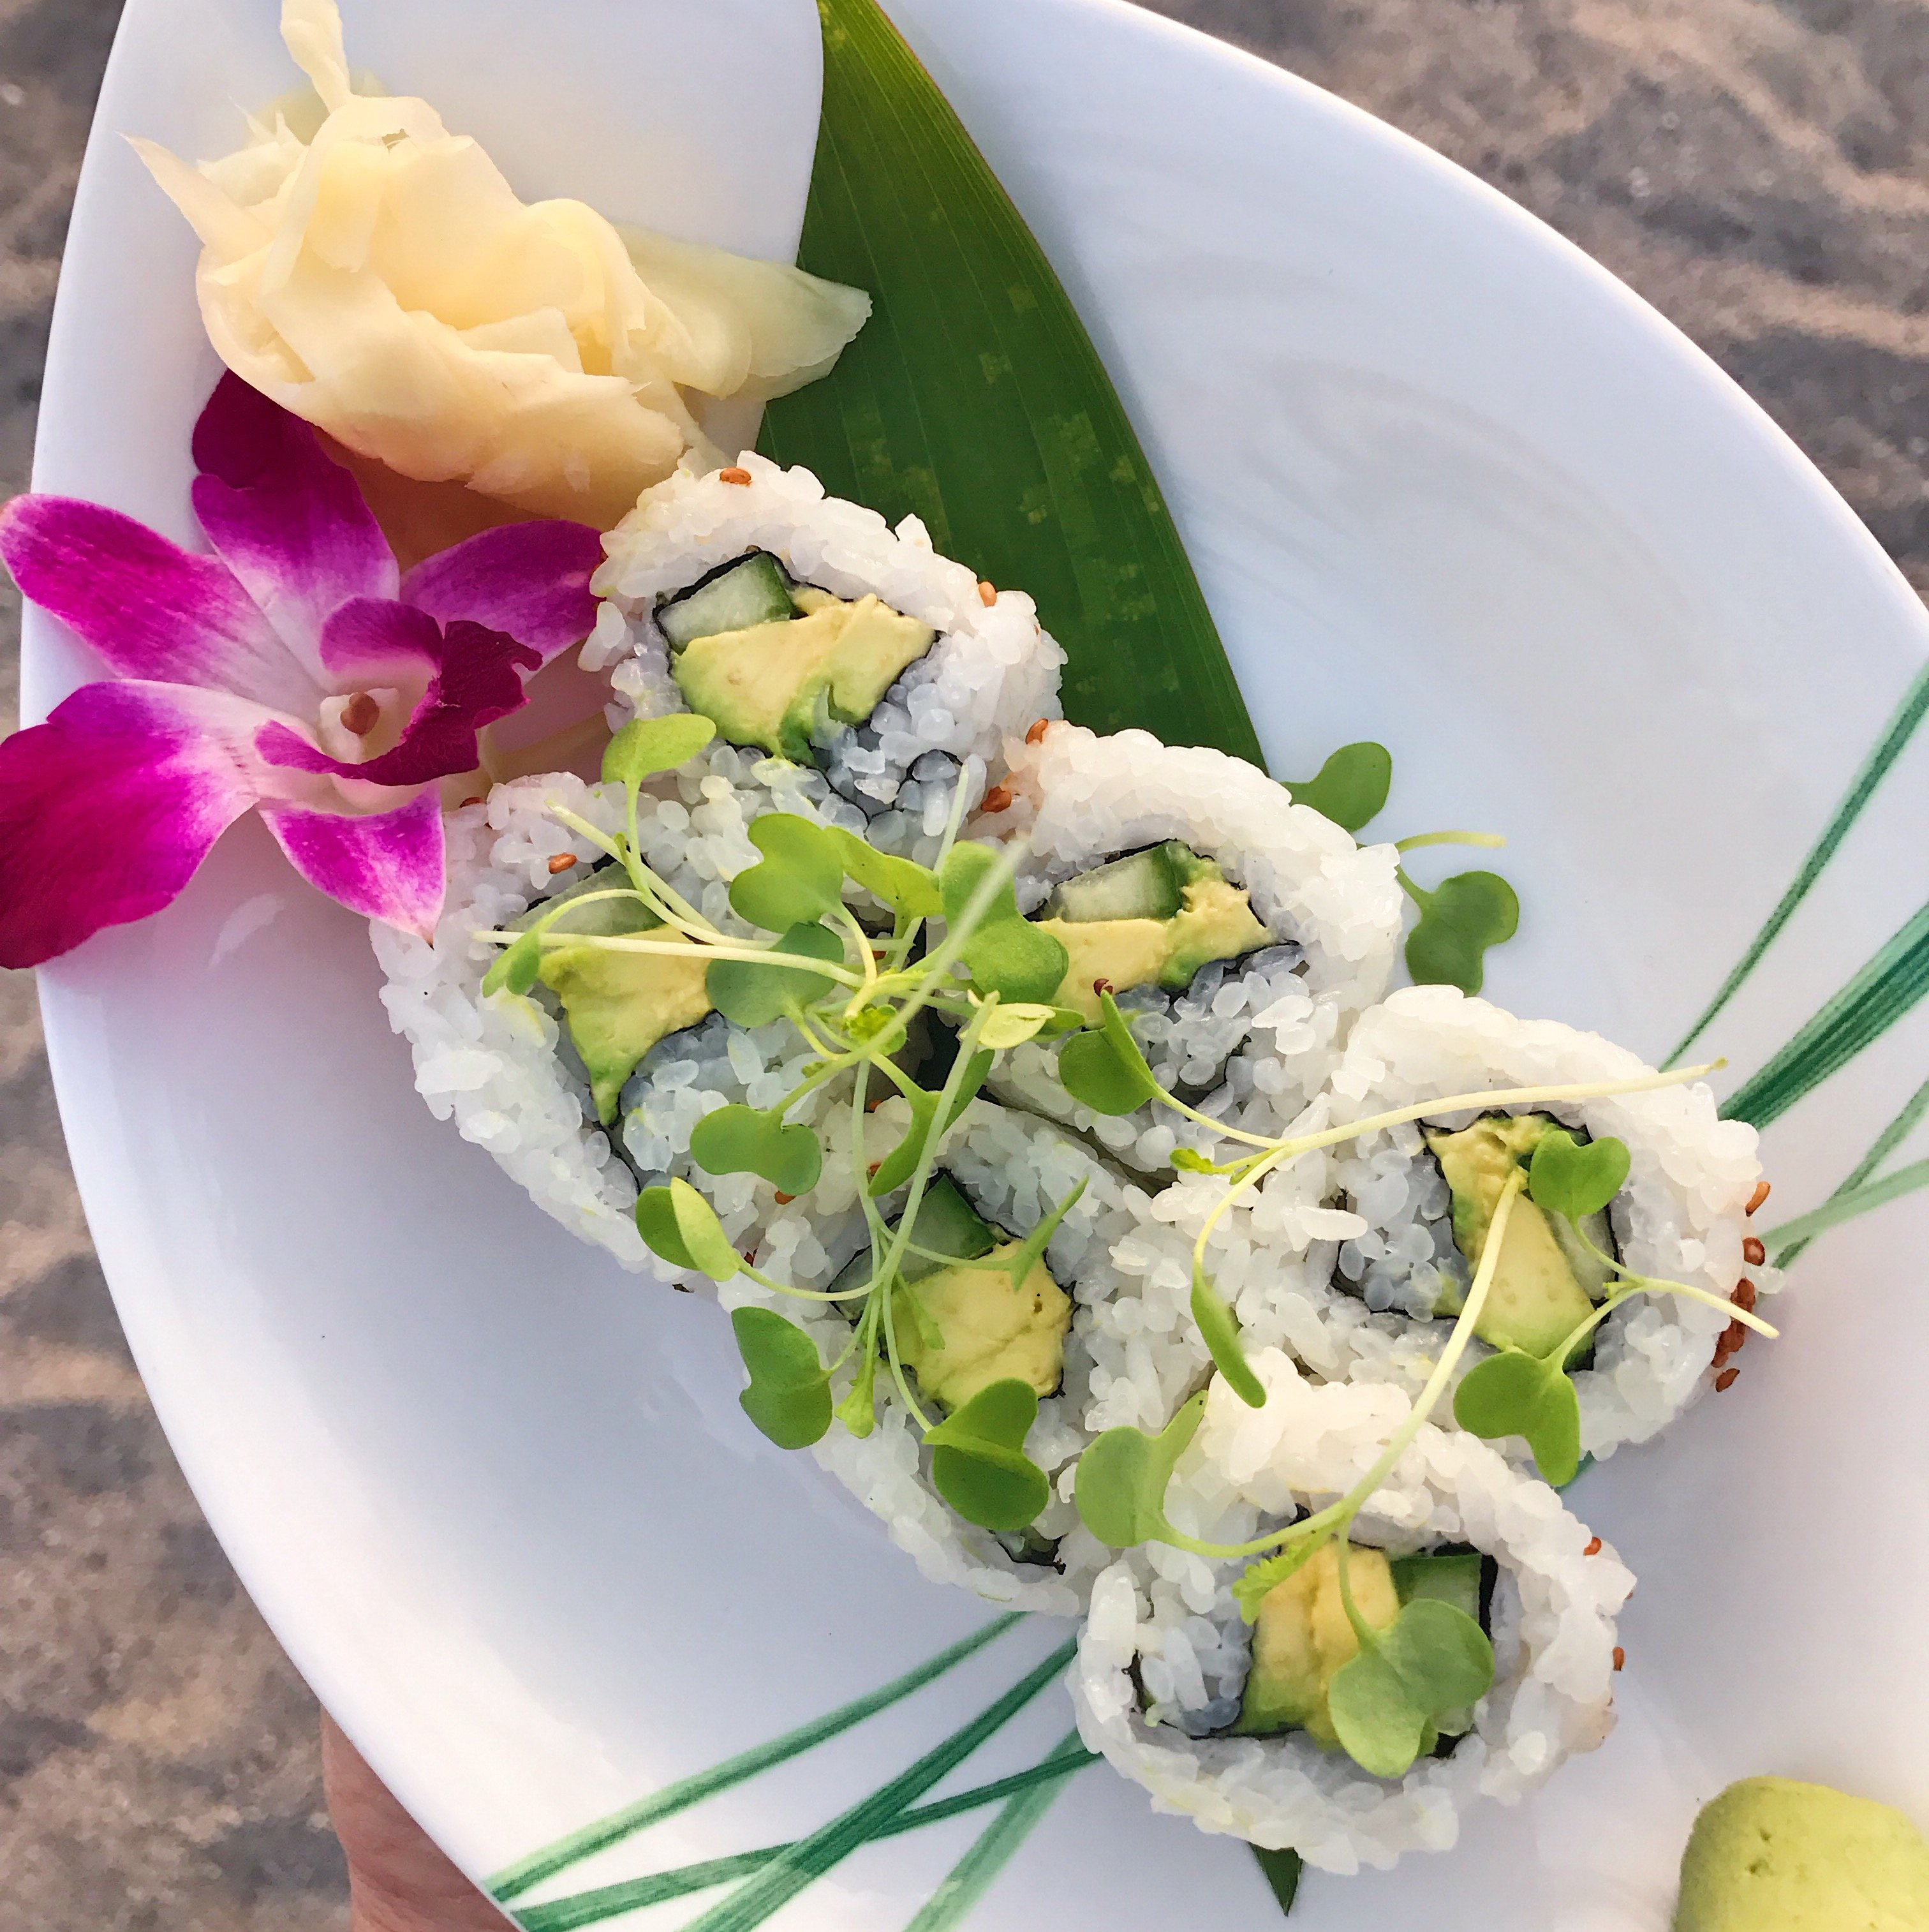 is your sushi gluten-free?